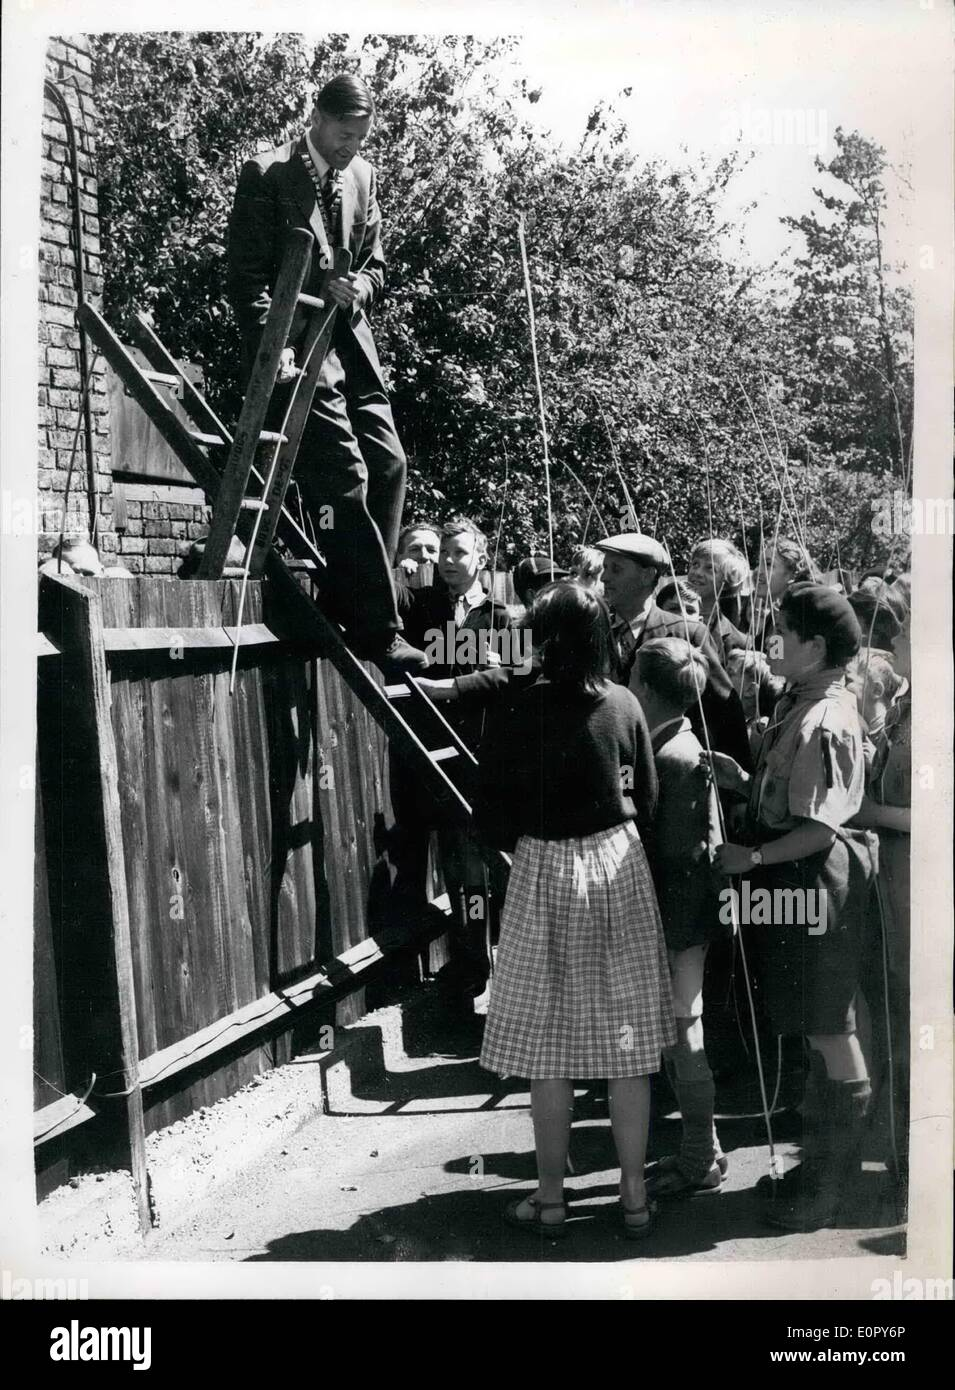 May 05, 1957 - Beating The Bounds Ceremony: The ancient custom of beating the bounde of the parish of Chipping Barnet, was carried out today. It was last performed in 1933. Picture Shows: Councillor J.M. Keyworth, Chairman of the Barnet Urban District Council, climbs over a fence with the did of a ladder, in order to follow the boundary line- during today's ceremony, watched by local children armed with their Willow Wands. - Stock Image